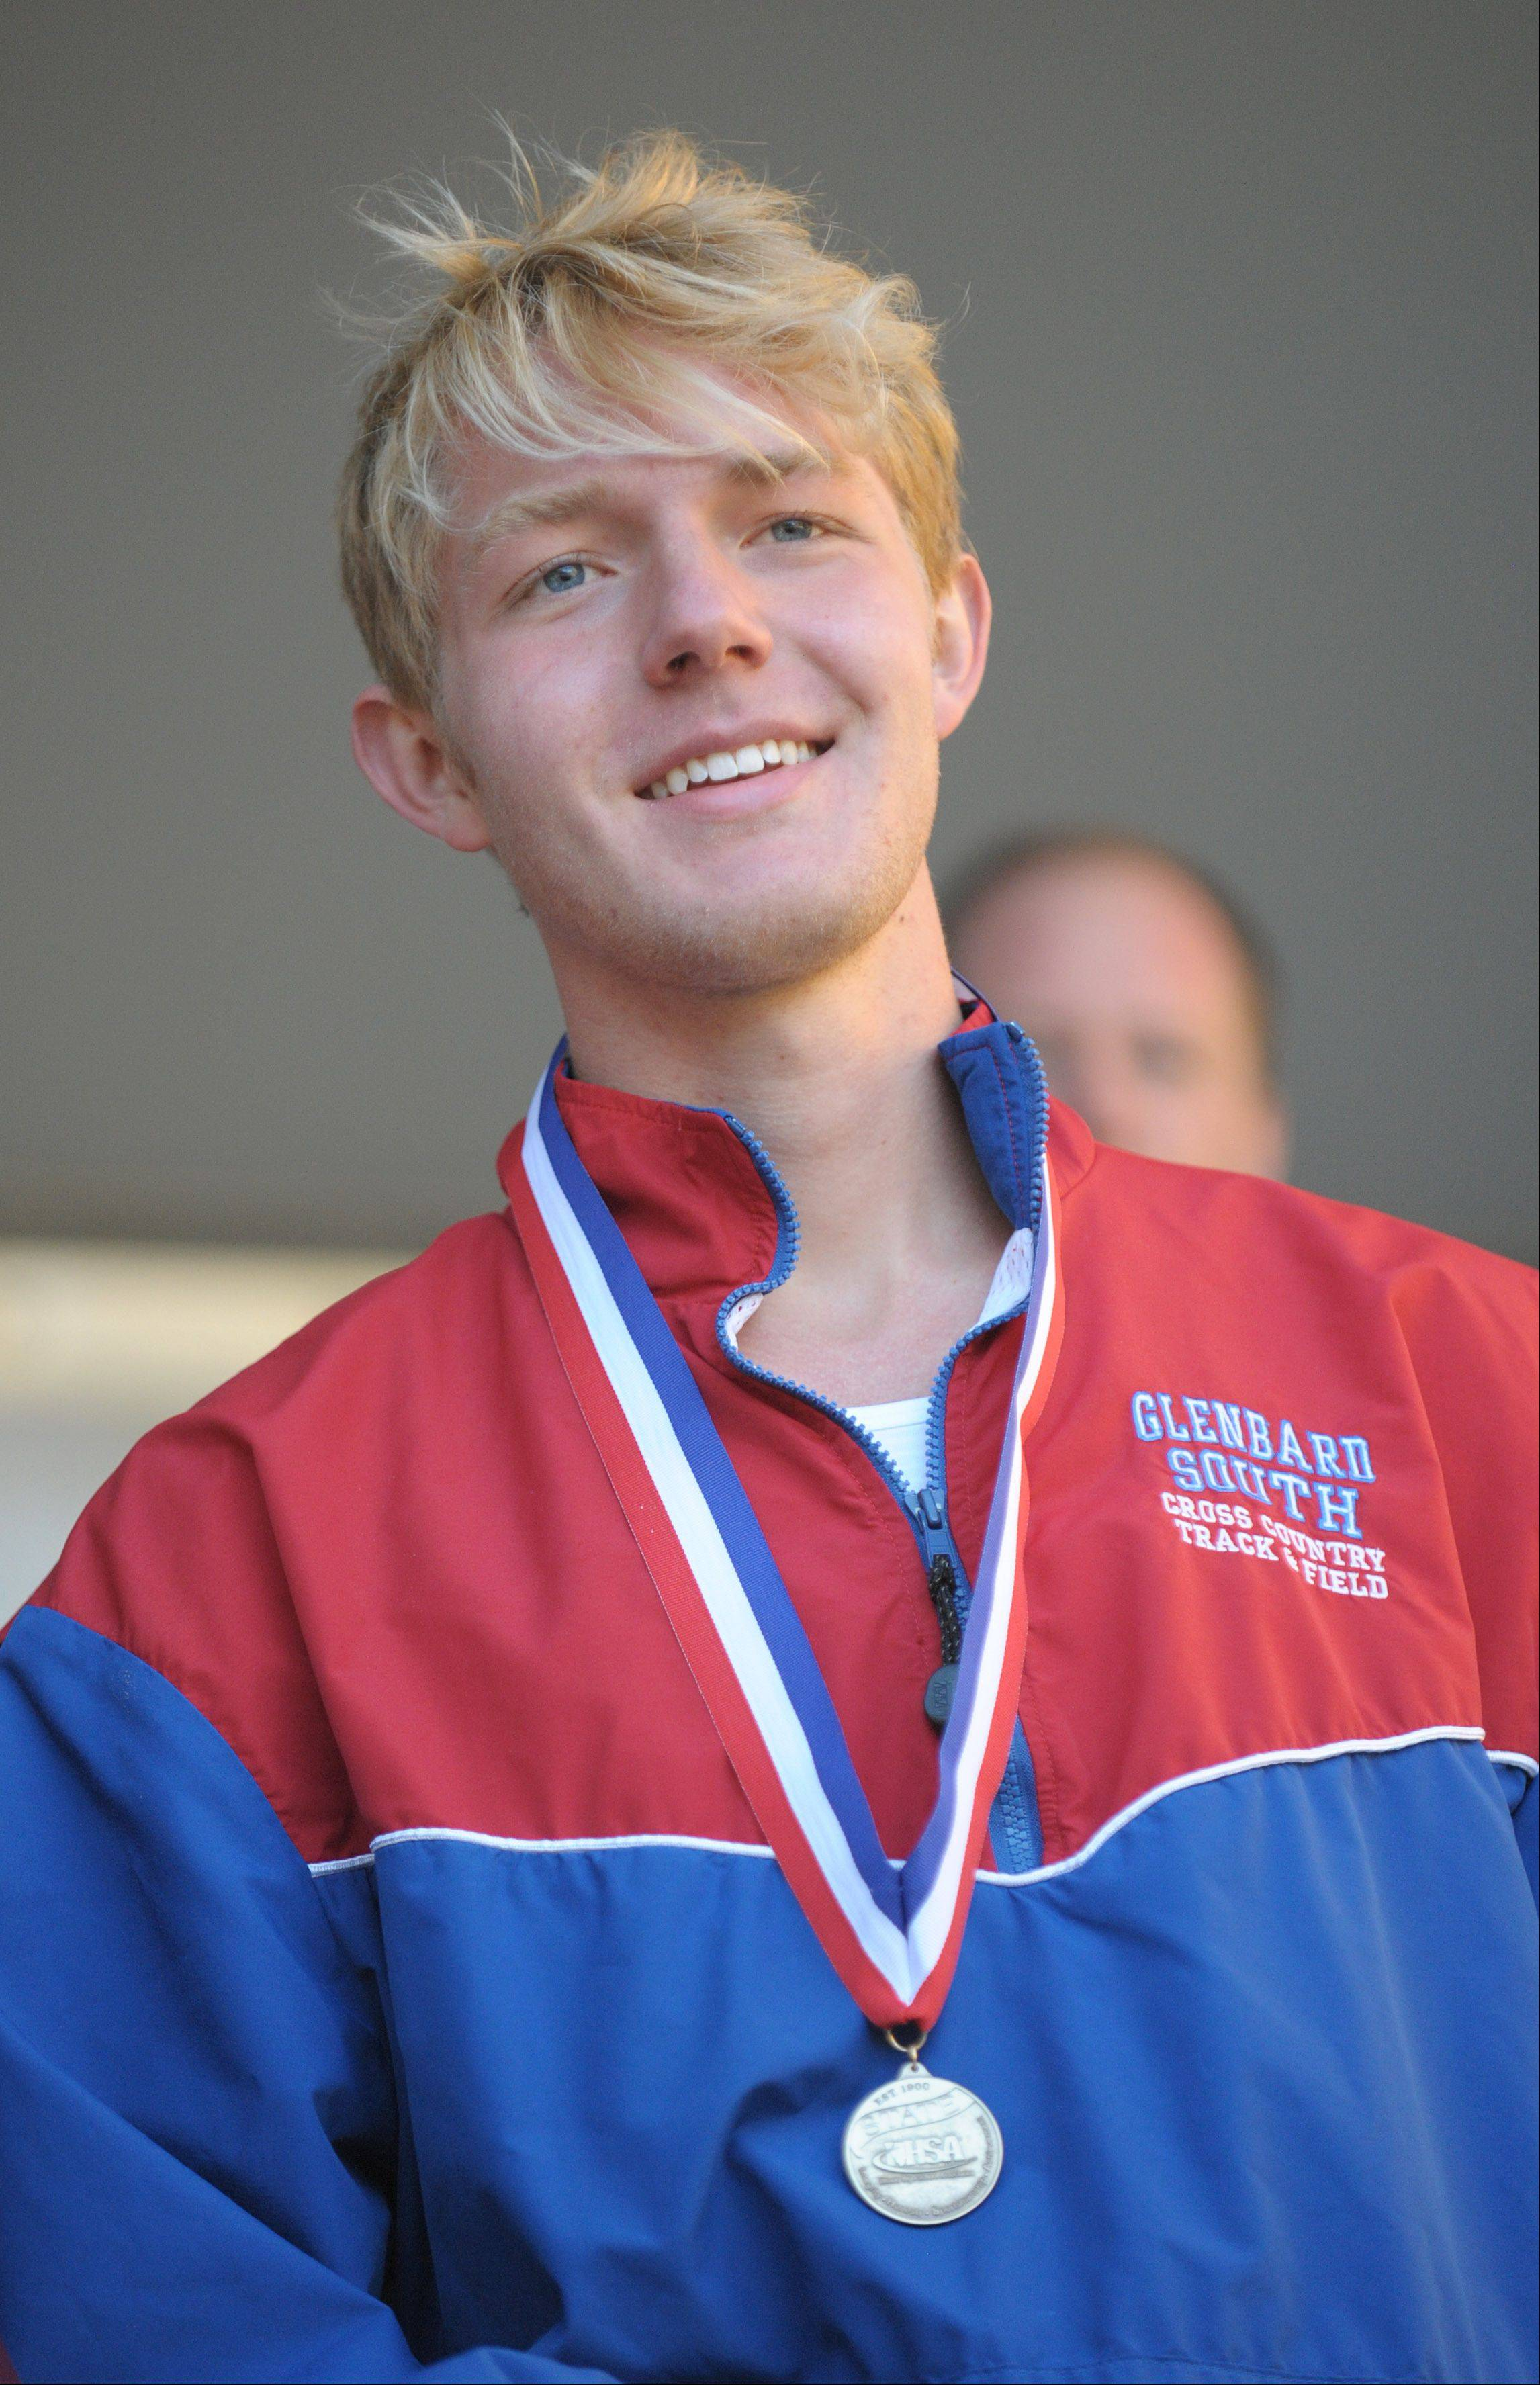 Glenbard South's John Wold accepts his medal for taking first place in the Class 2A IHSA cross country state final at Detweiller Park in Peoria on Saturday, November 9.